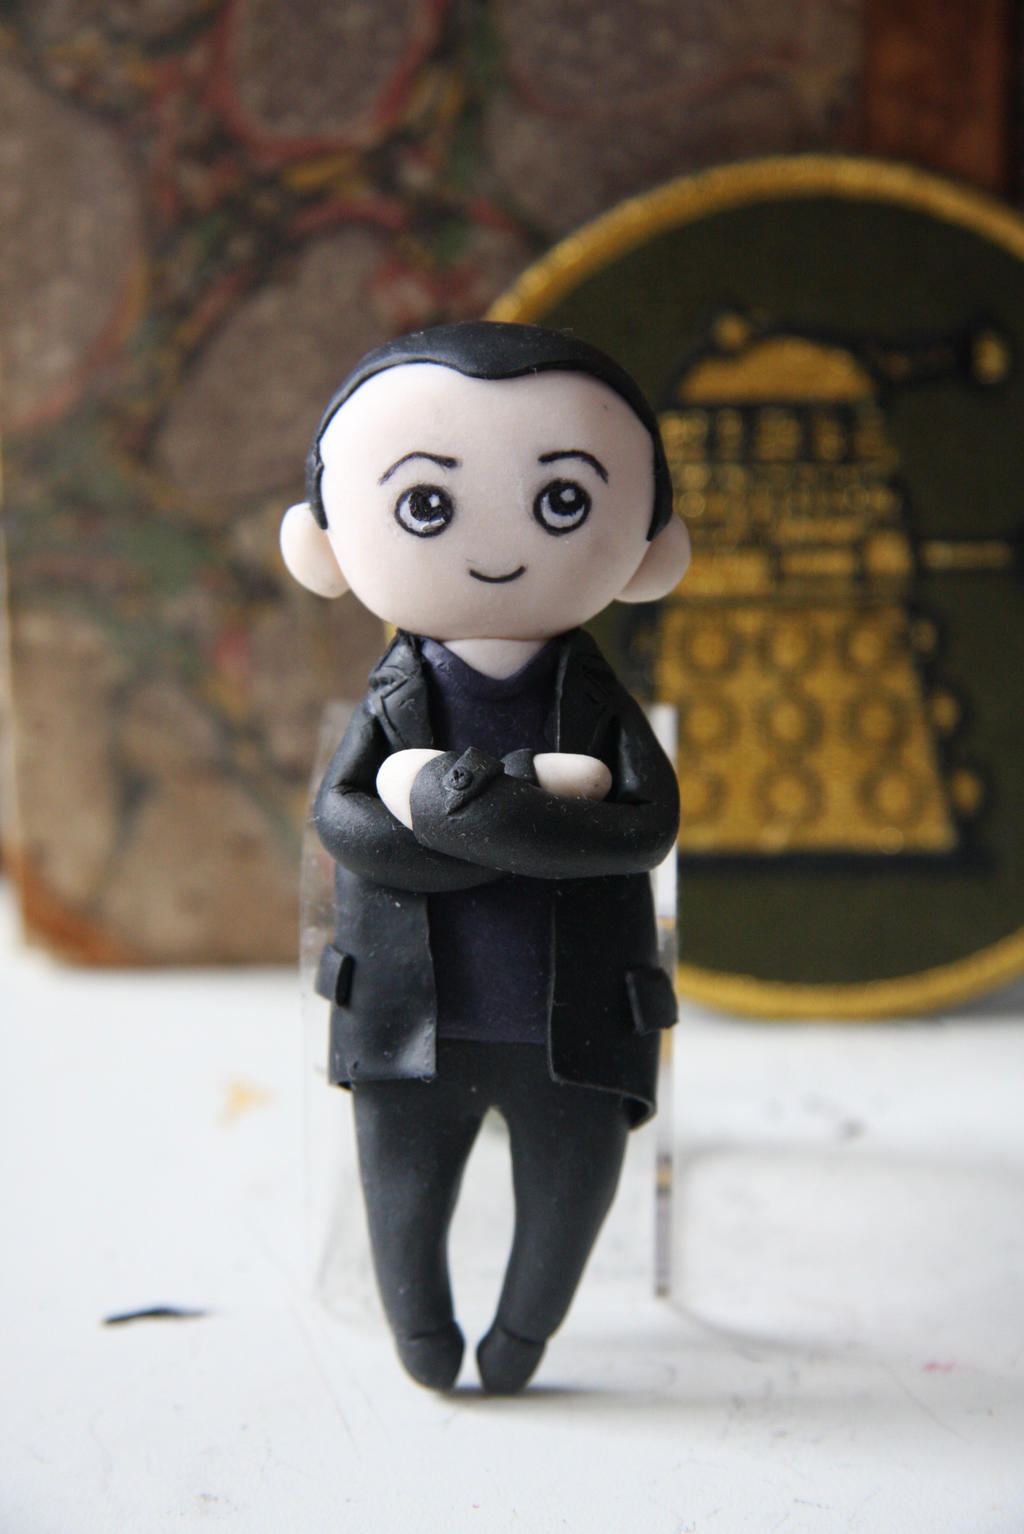 The Ninth Doctor by Monicmon